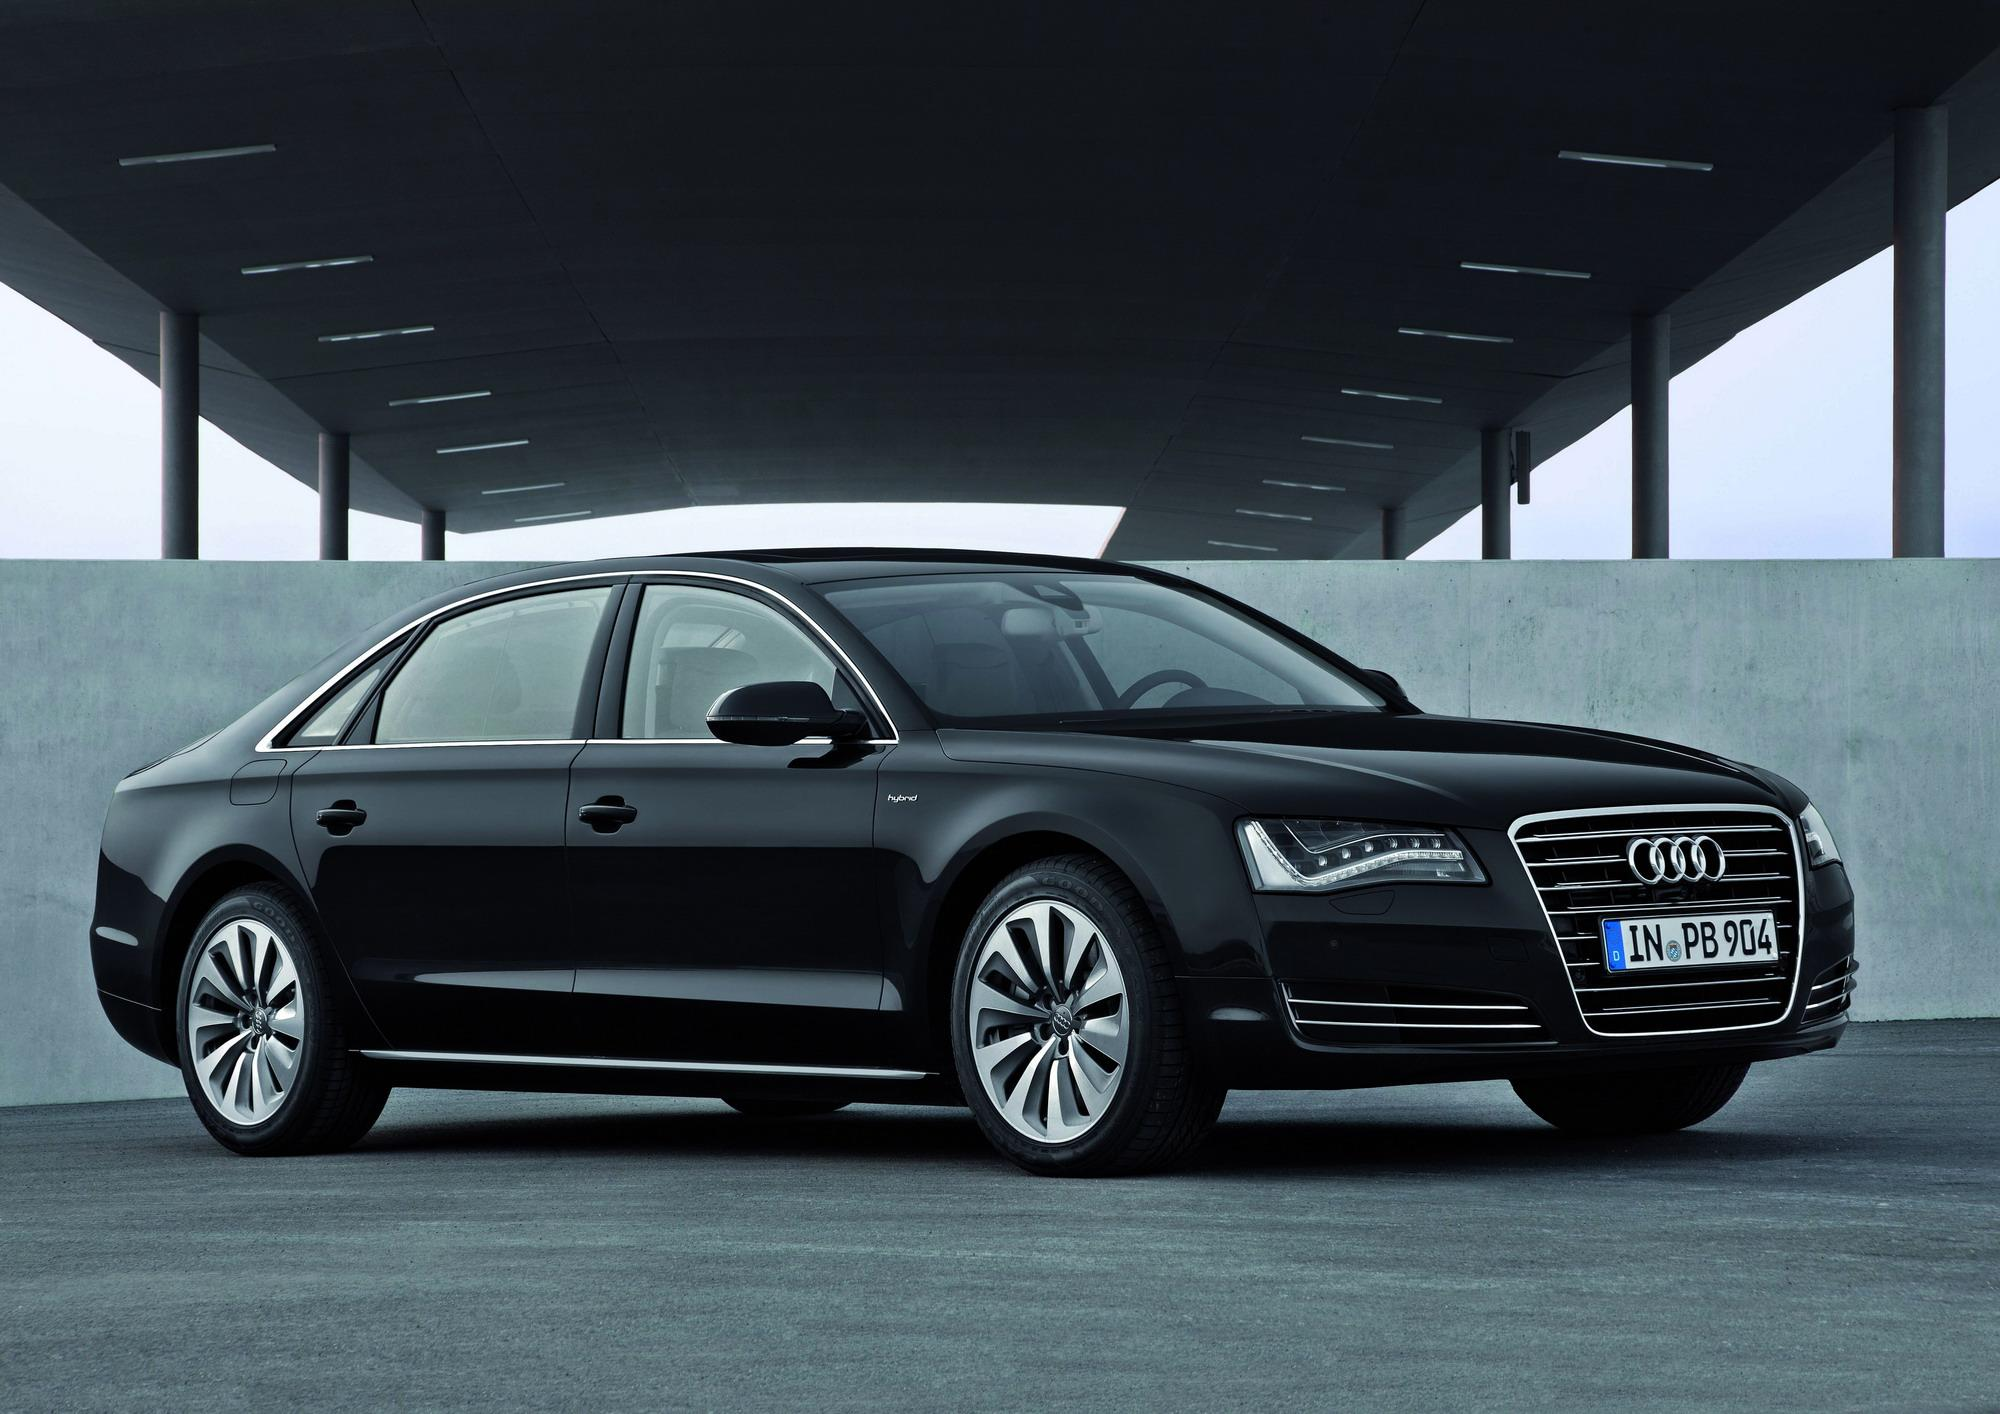 2012 audi a8 hybrid review top speed. Black Bedroom Furniture Sets. Home Design Ideas